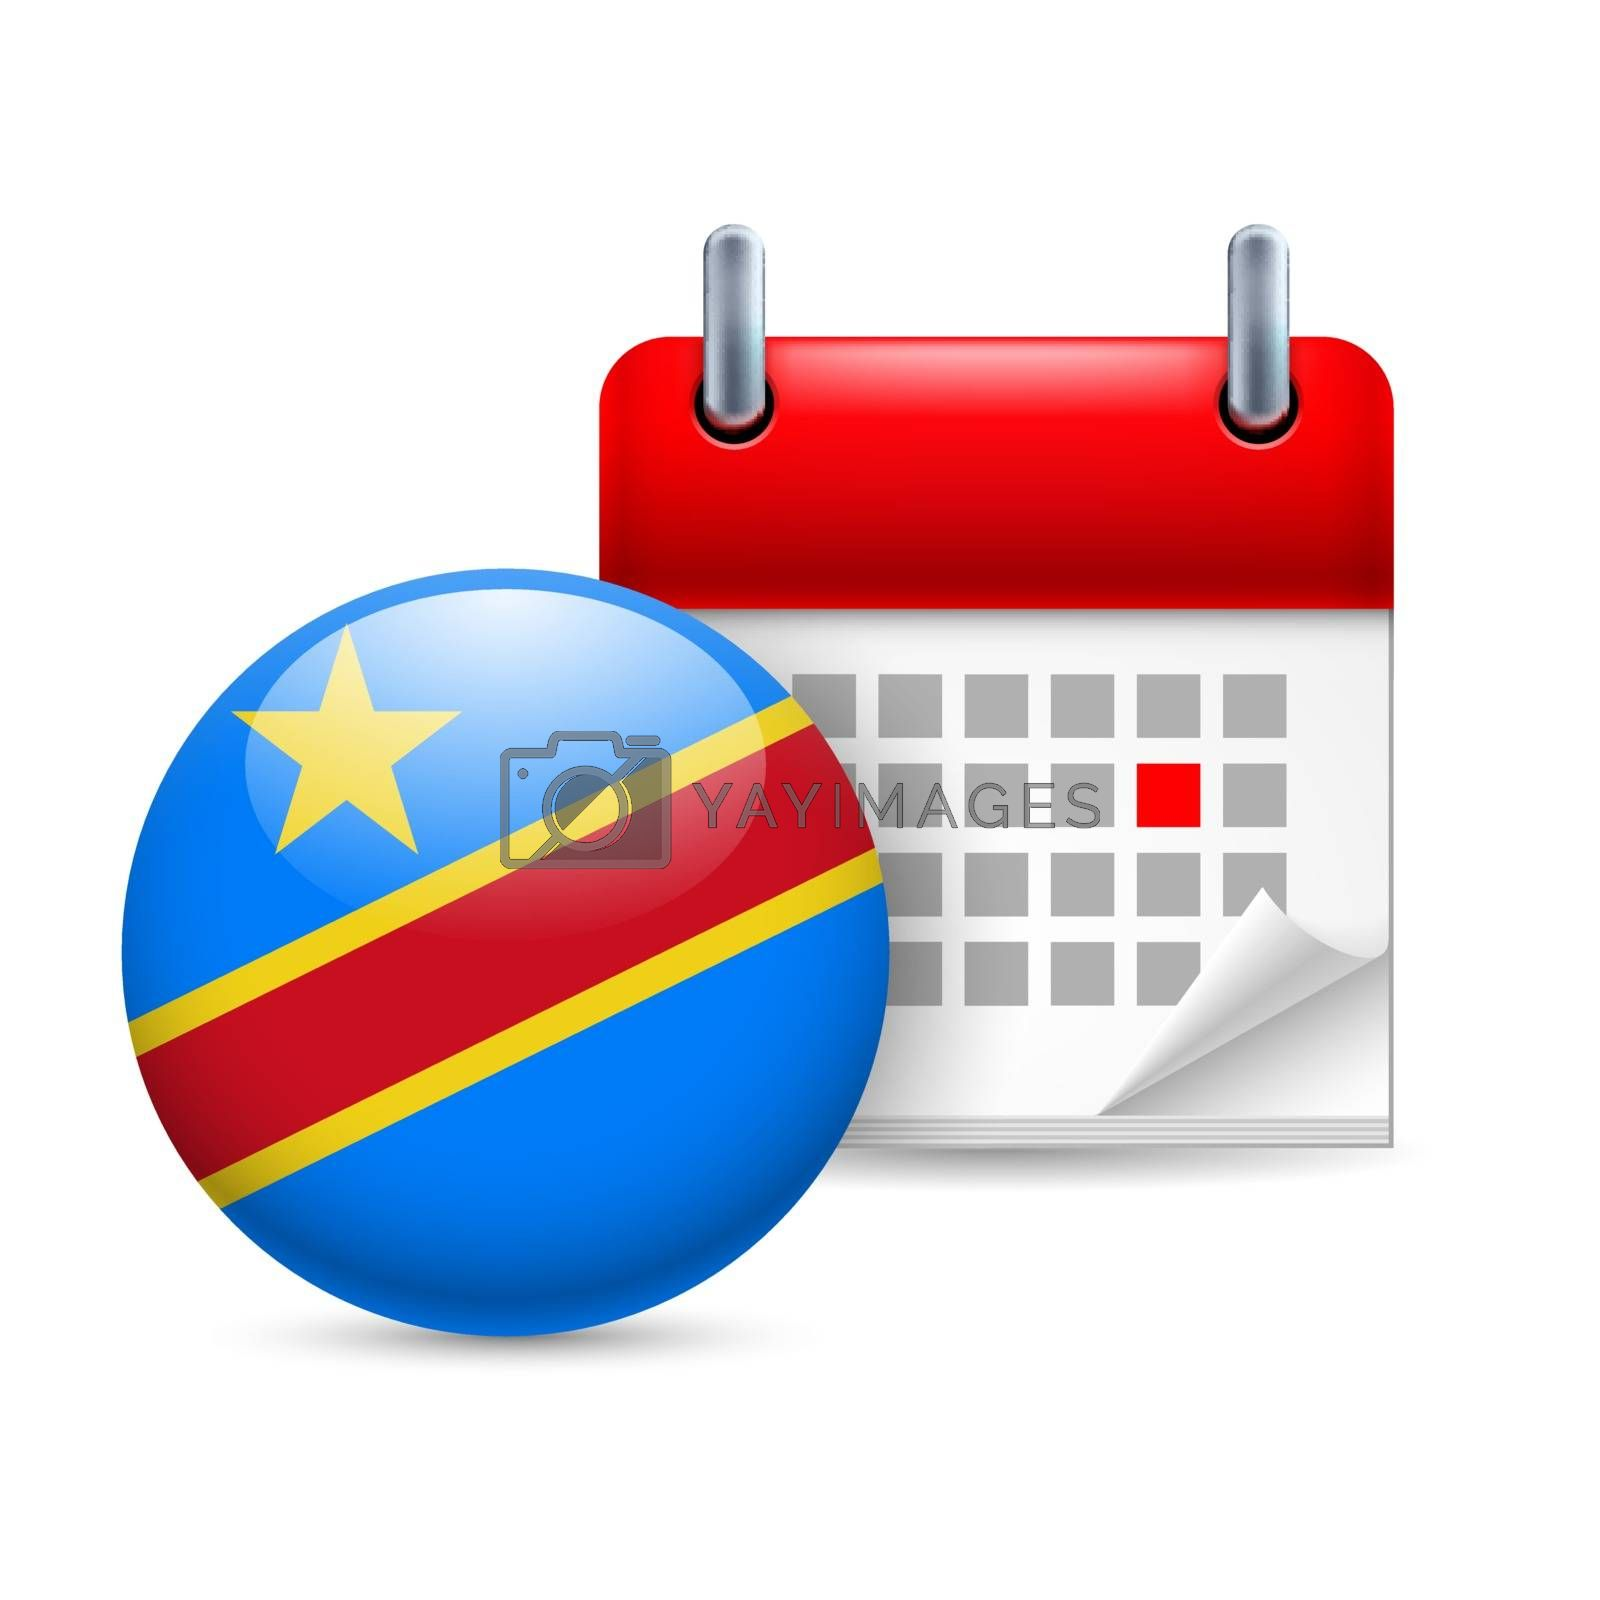 Royalty free image of Icon of National Day in Democratic Republic of the Congo by dvarg